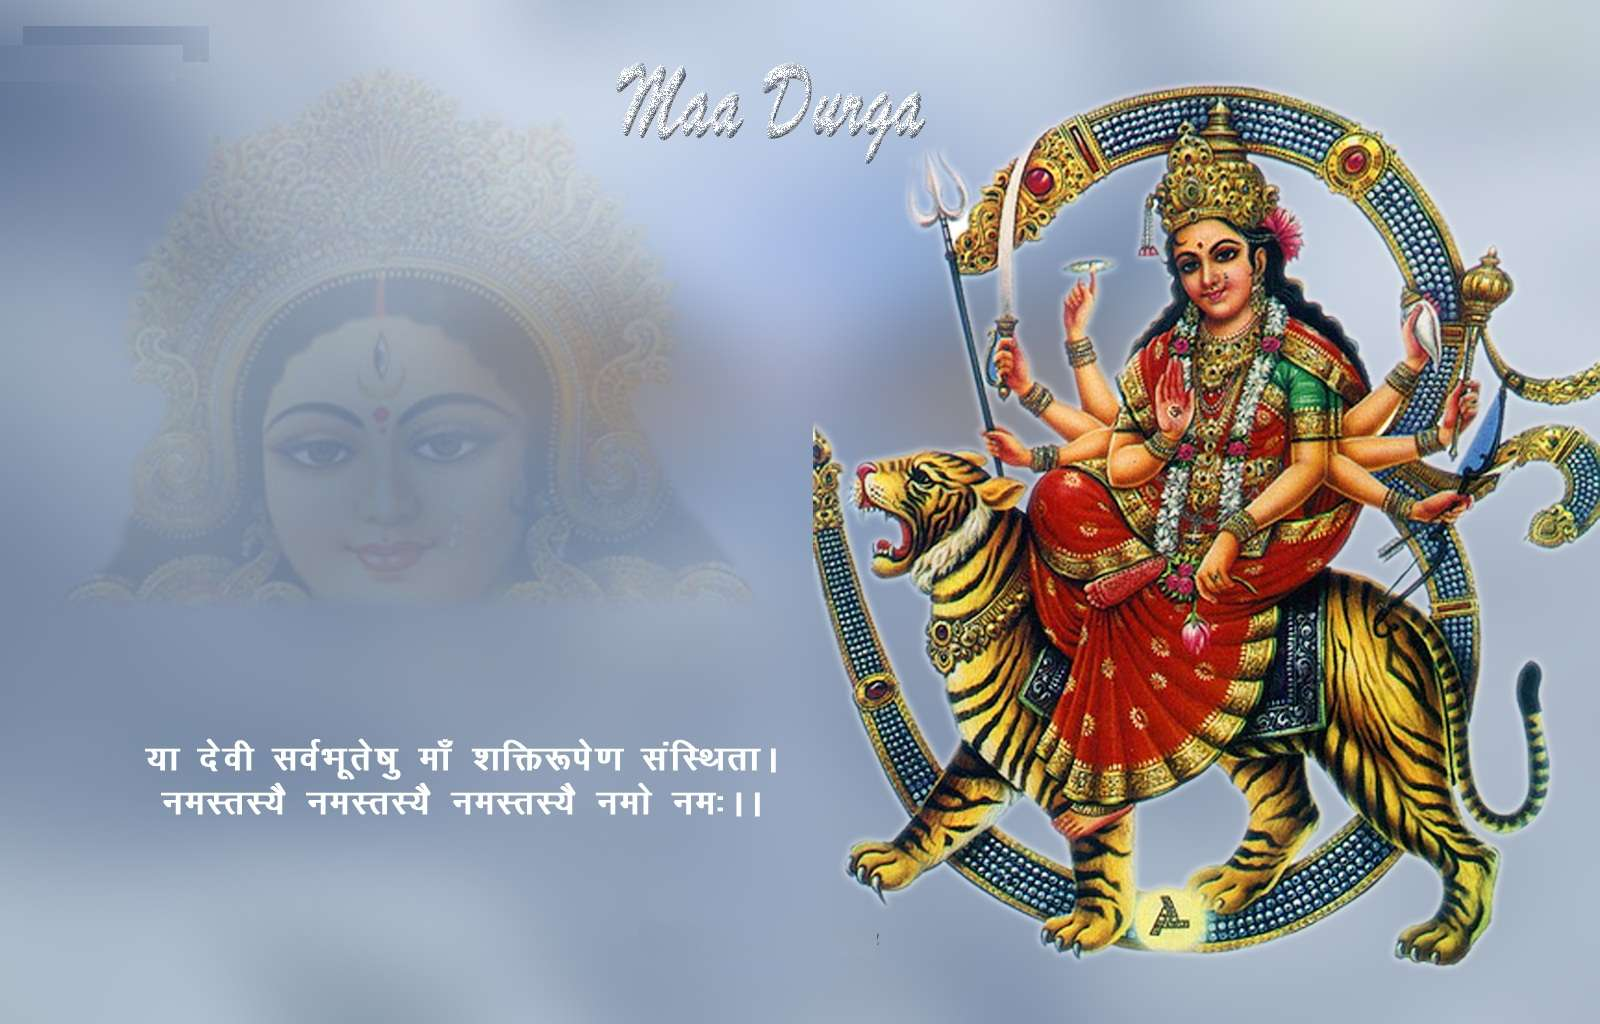 Jharkhand Girl Wallpaper Free Maa Durga Hd Desktop Wallpaper Photo Images